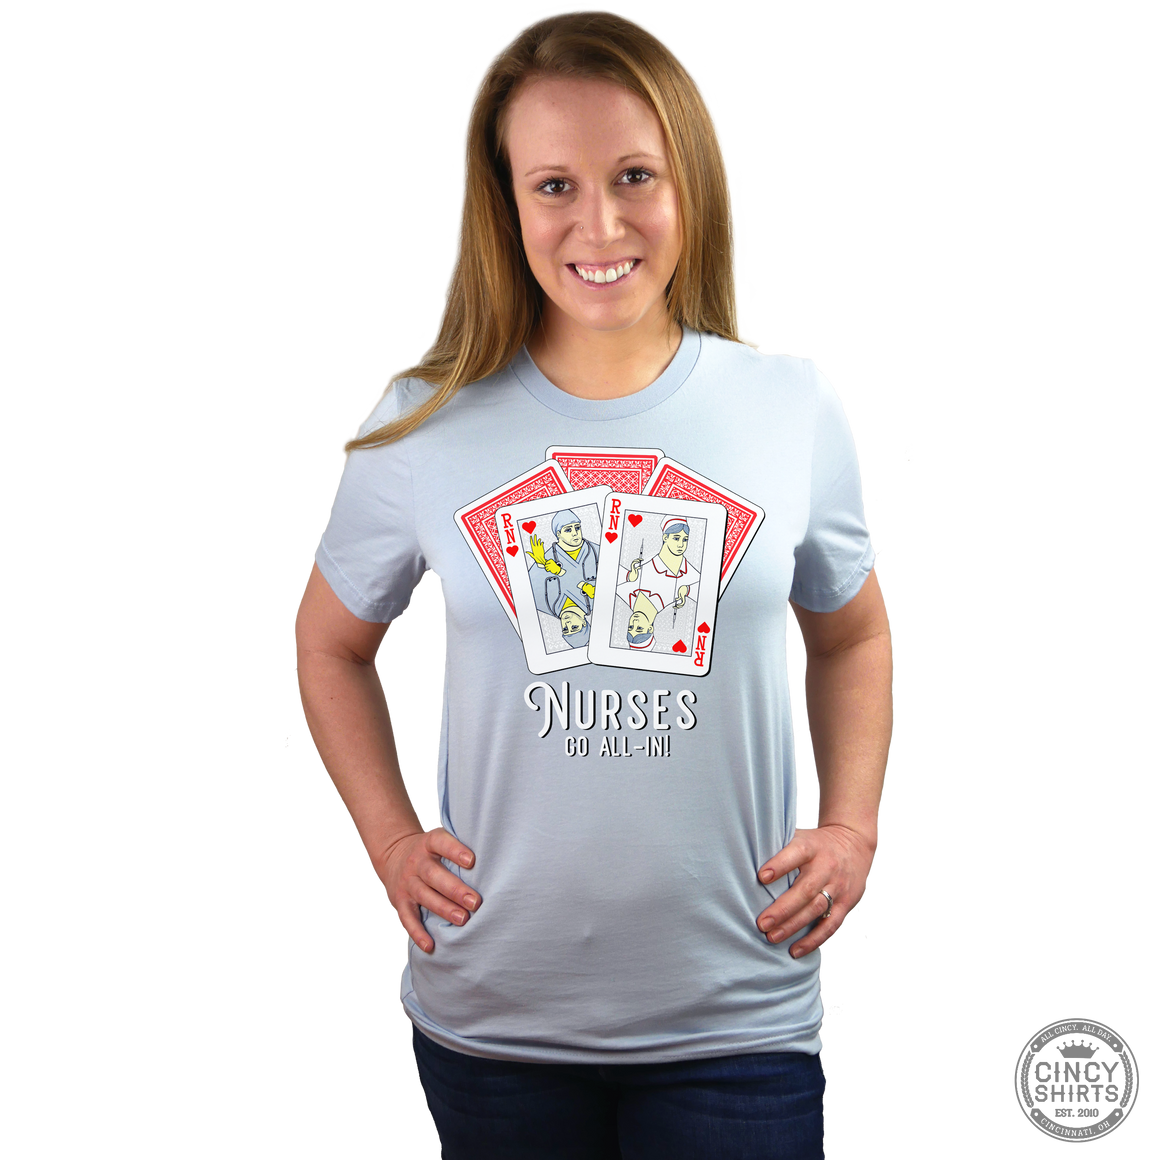 Nurses Go All In T-shirt